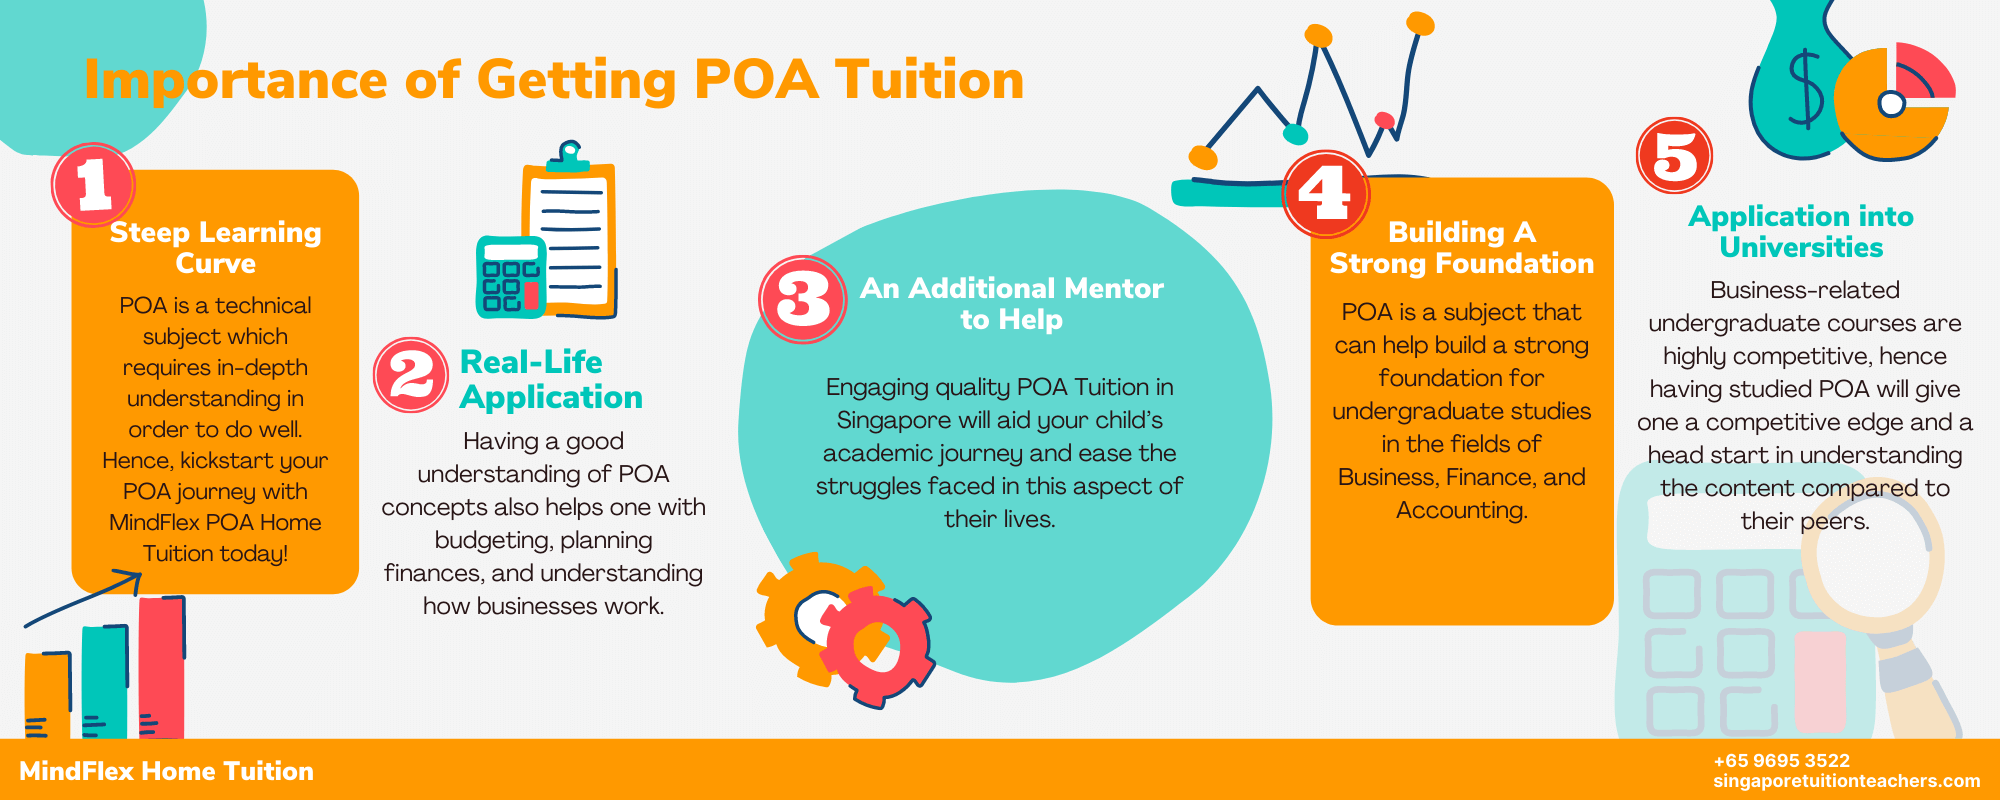 Infographic on Importance of POA Tuition